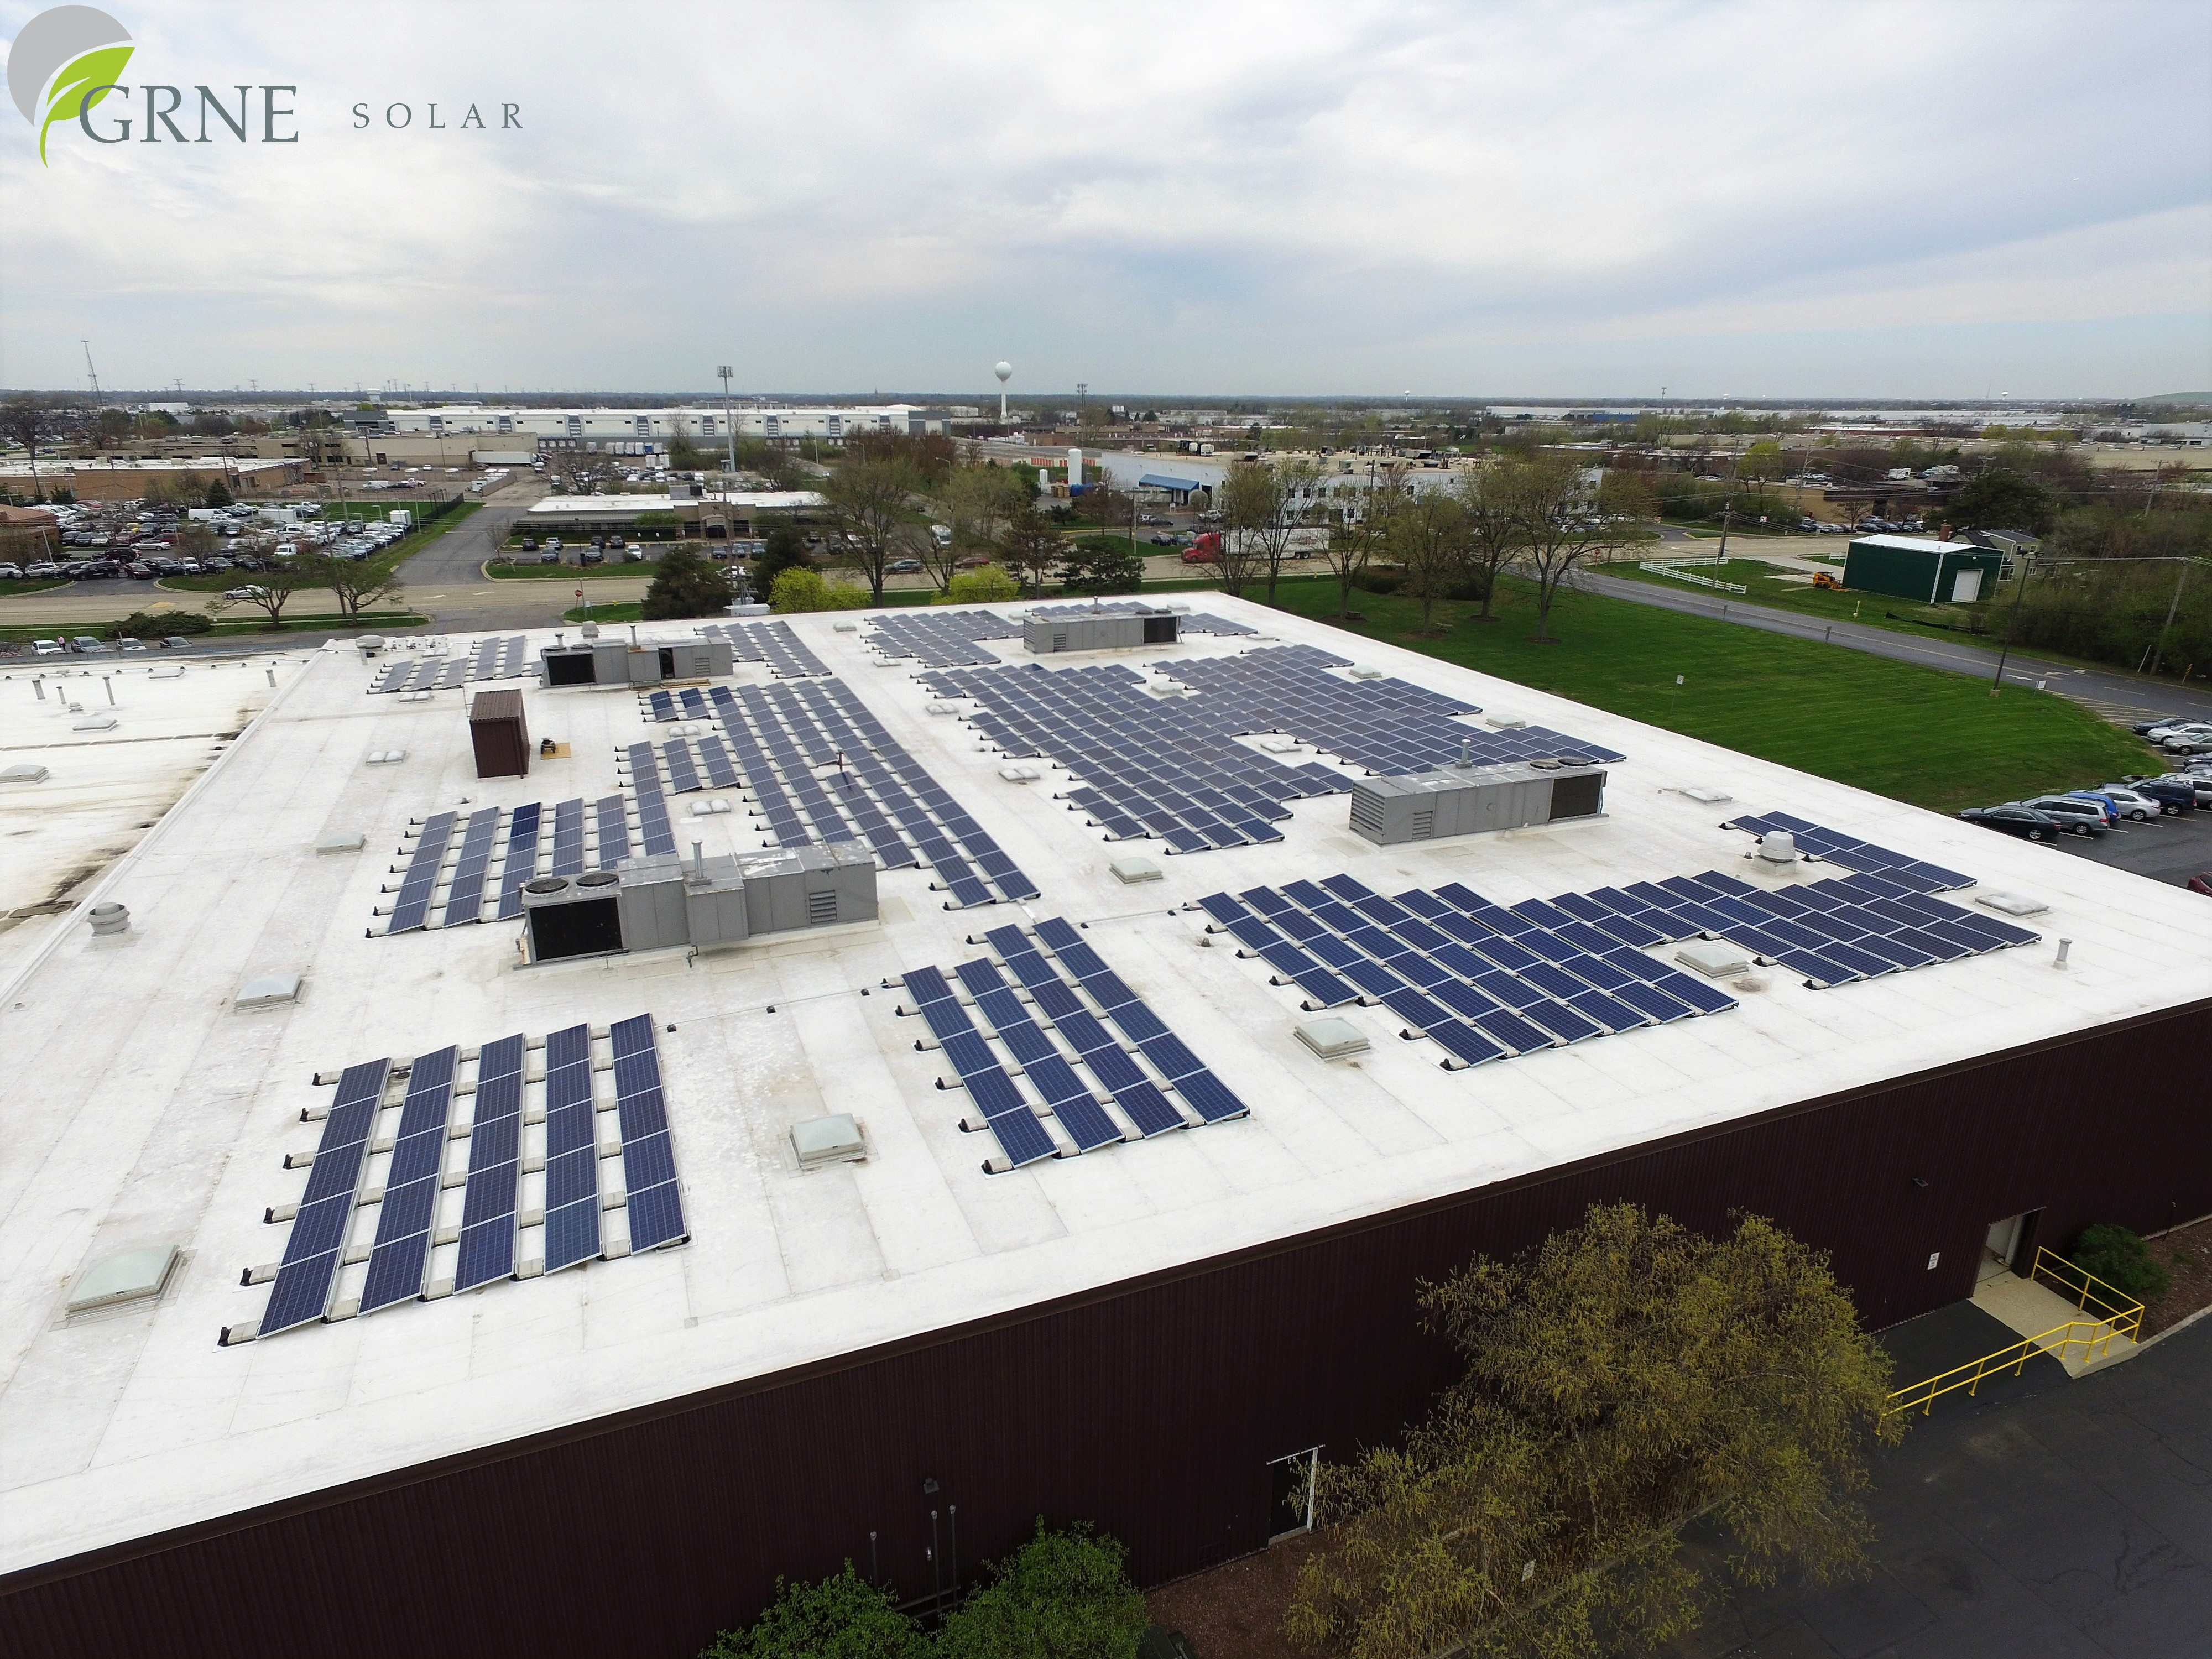 GRNE Solar Installation at Spraying Systems facilities